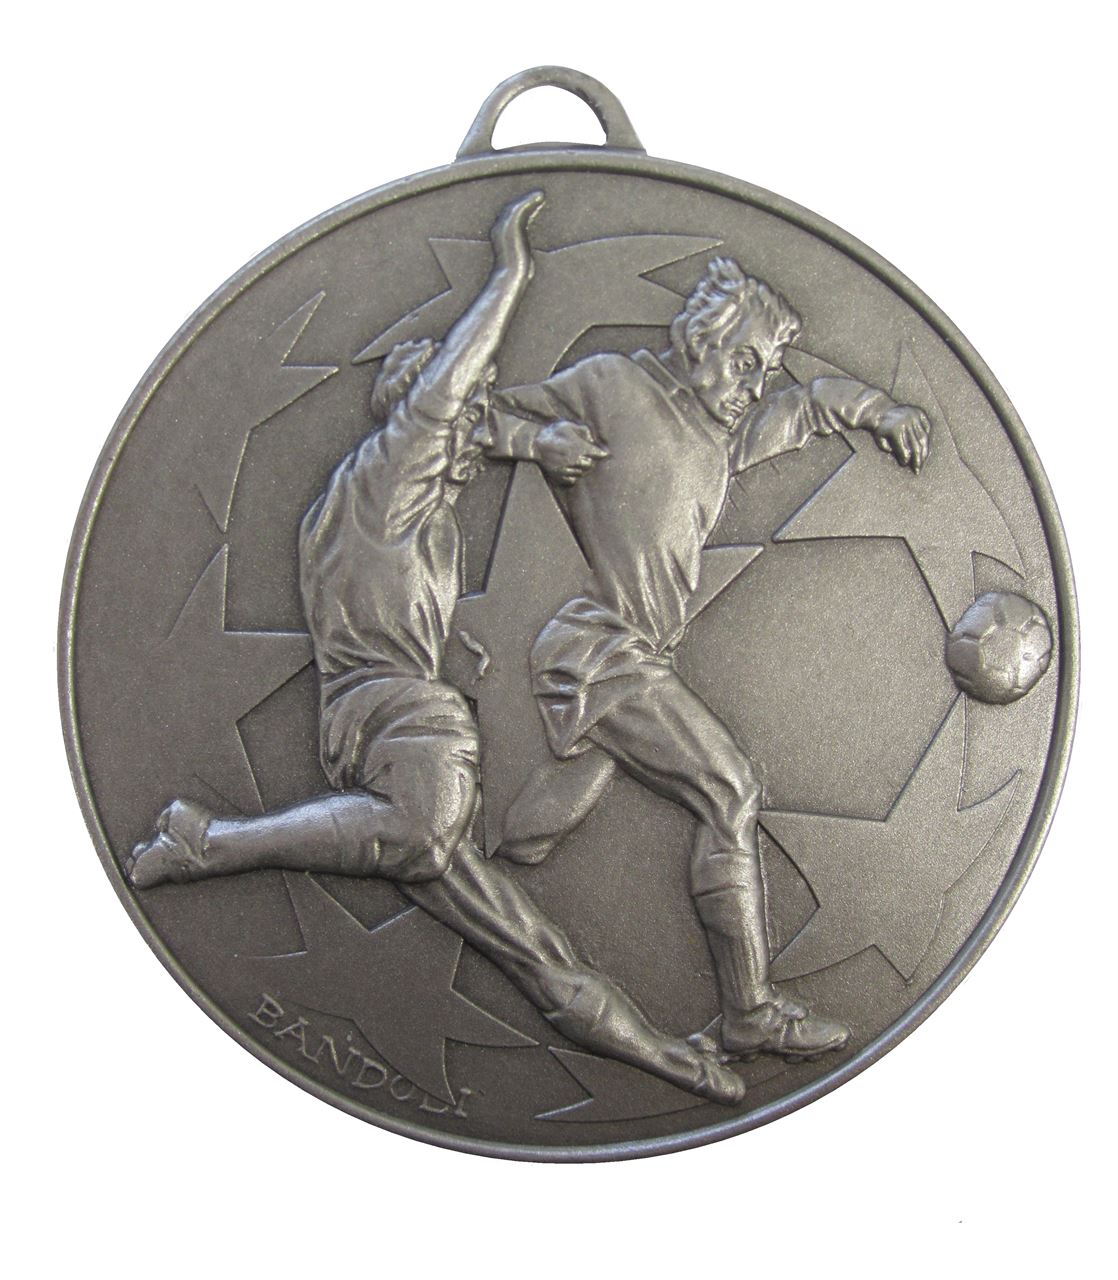 Silver Economy Football Stars Medal (size: 50mm) - 437E